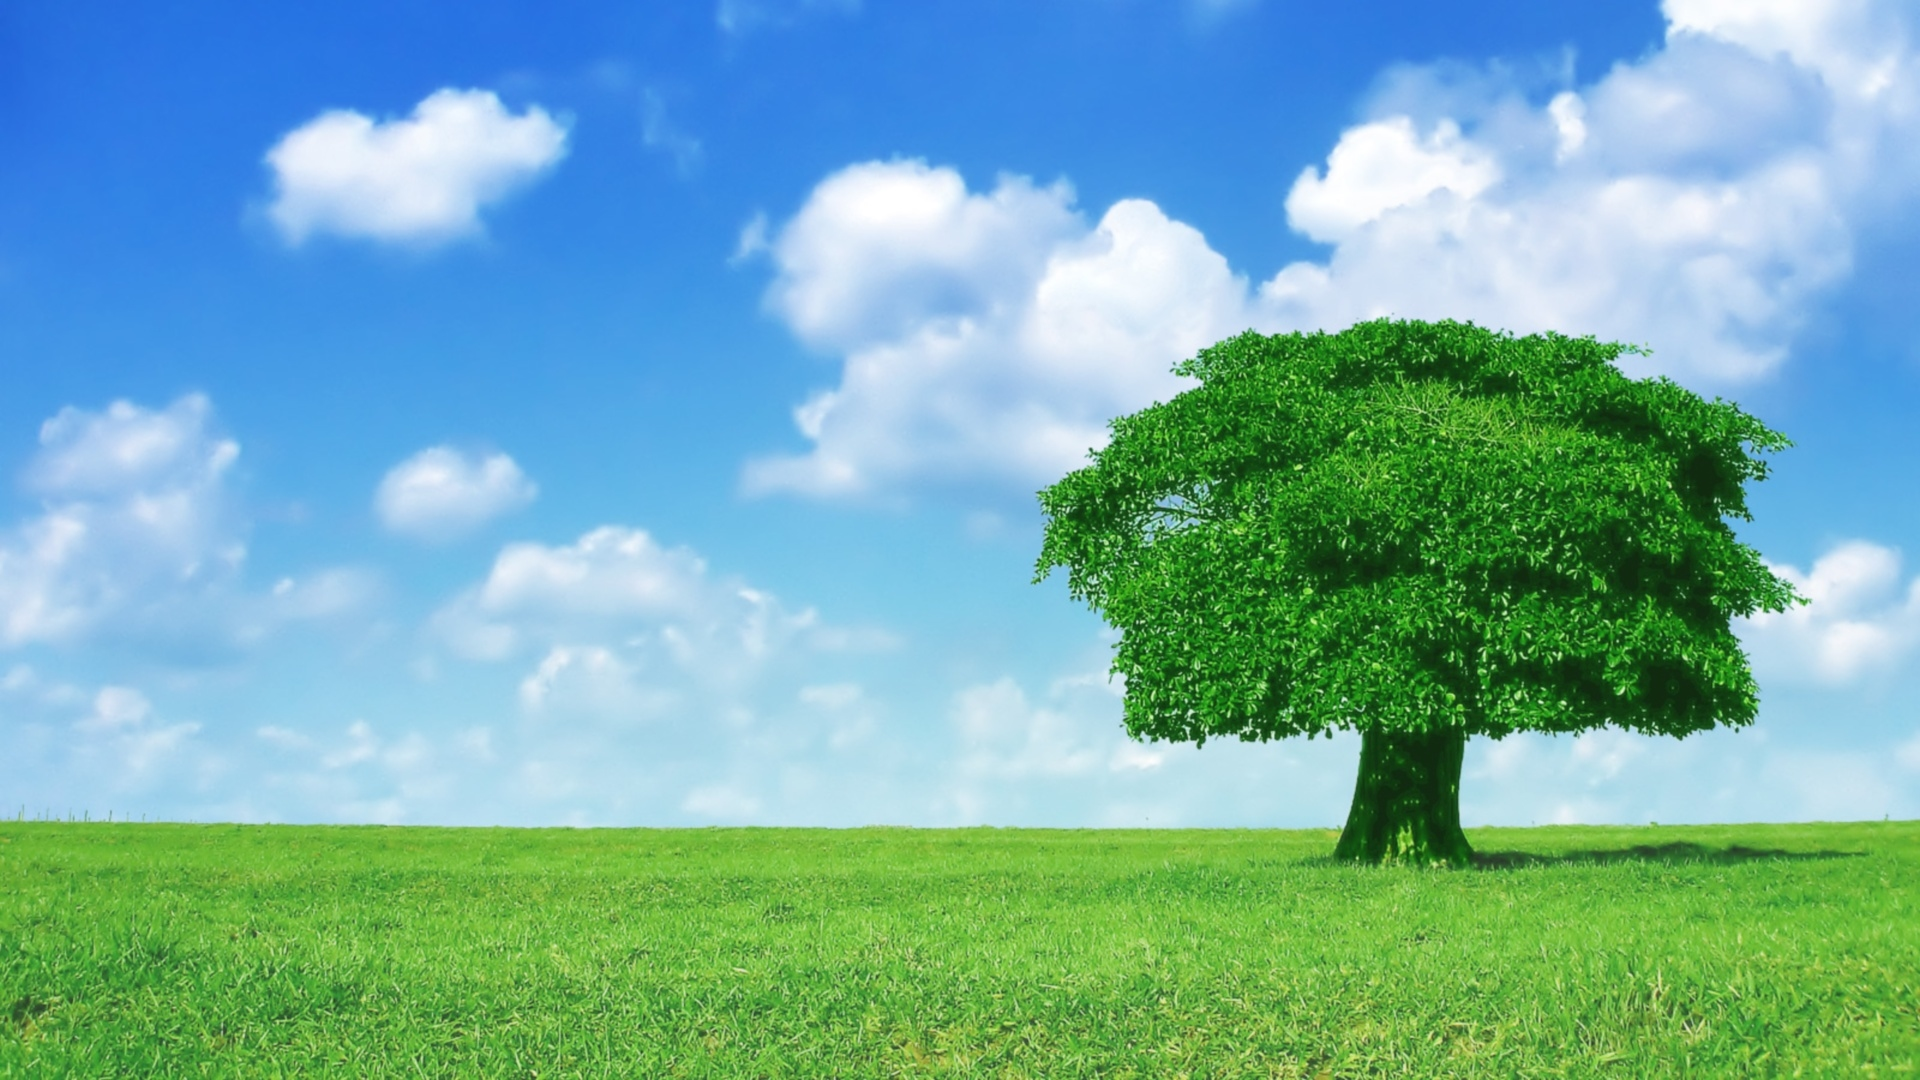 40 Hd Tree Wallpapersbackgrounds For Free Download